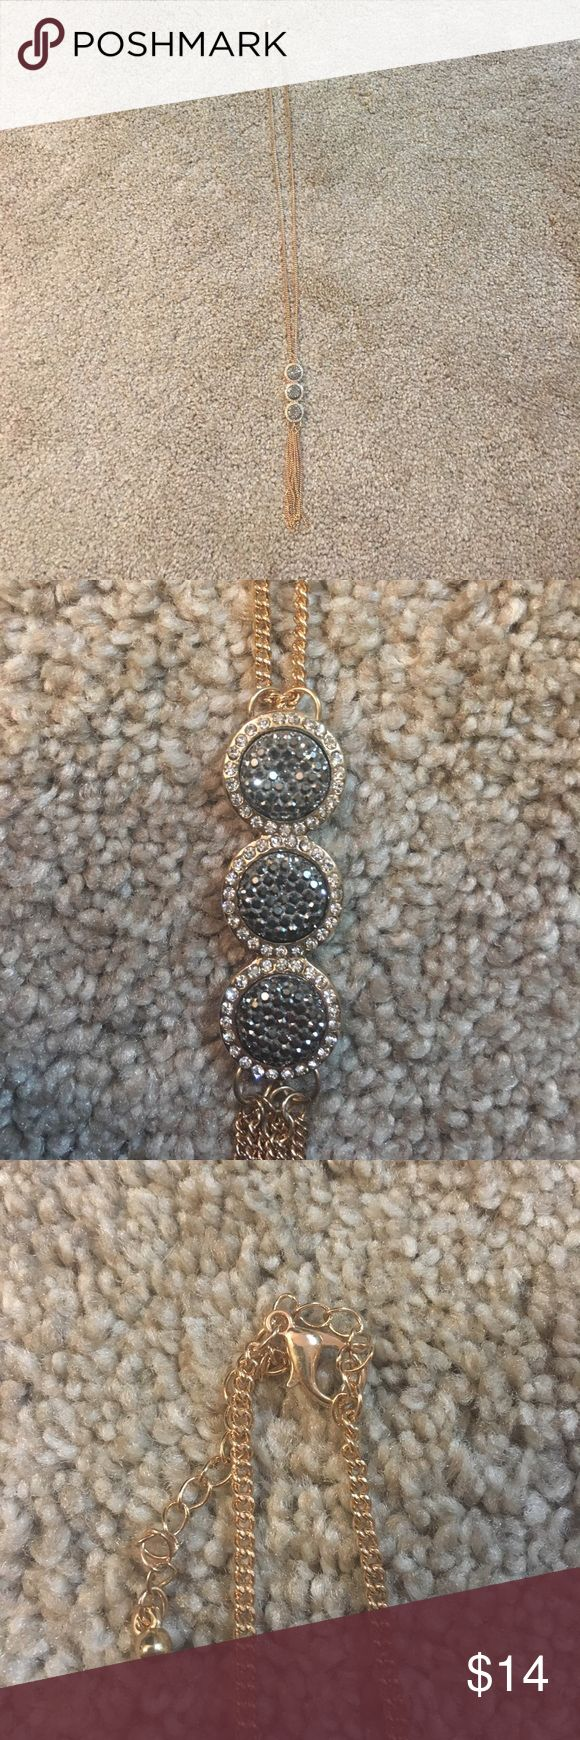 Long gold necklace Super cute and in excellent condition Jewelry Necklaces